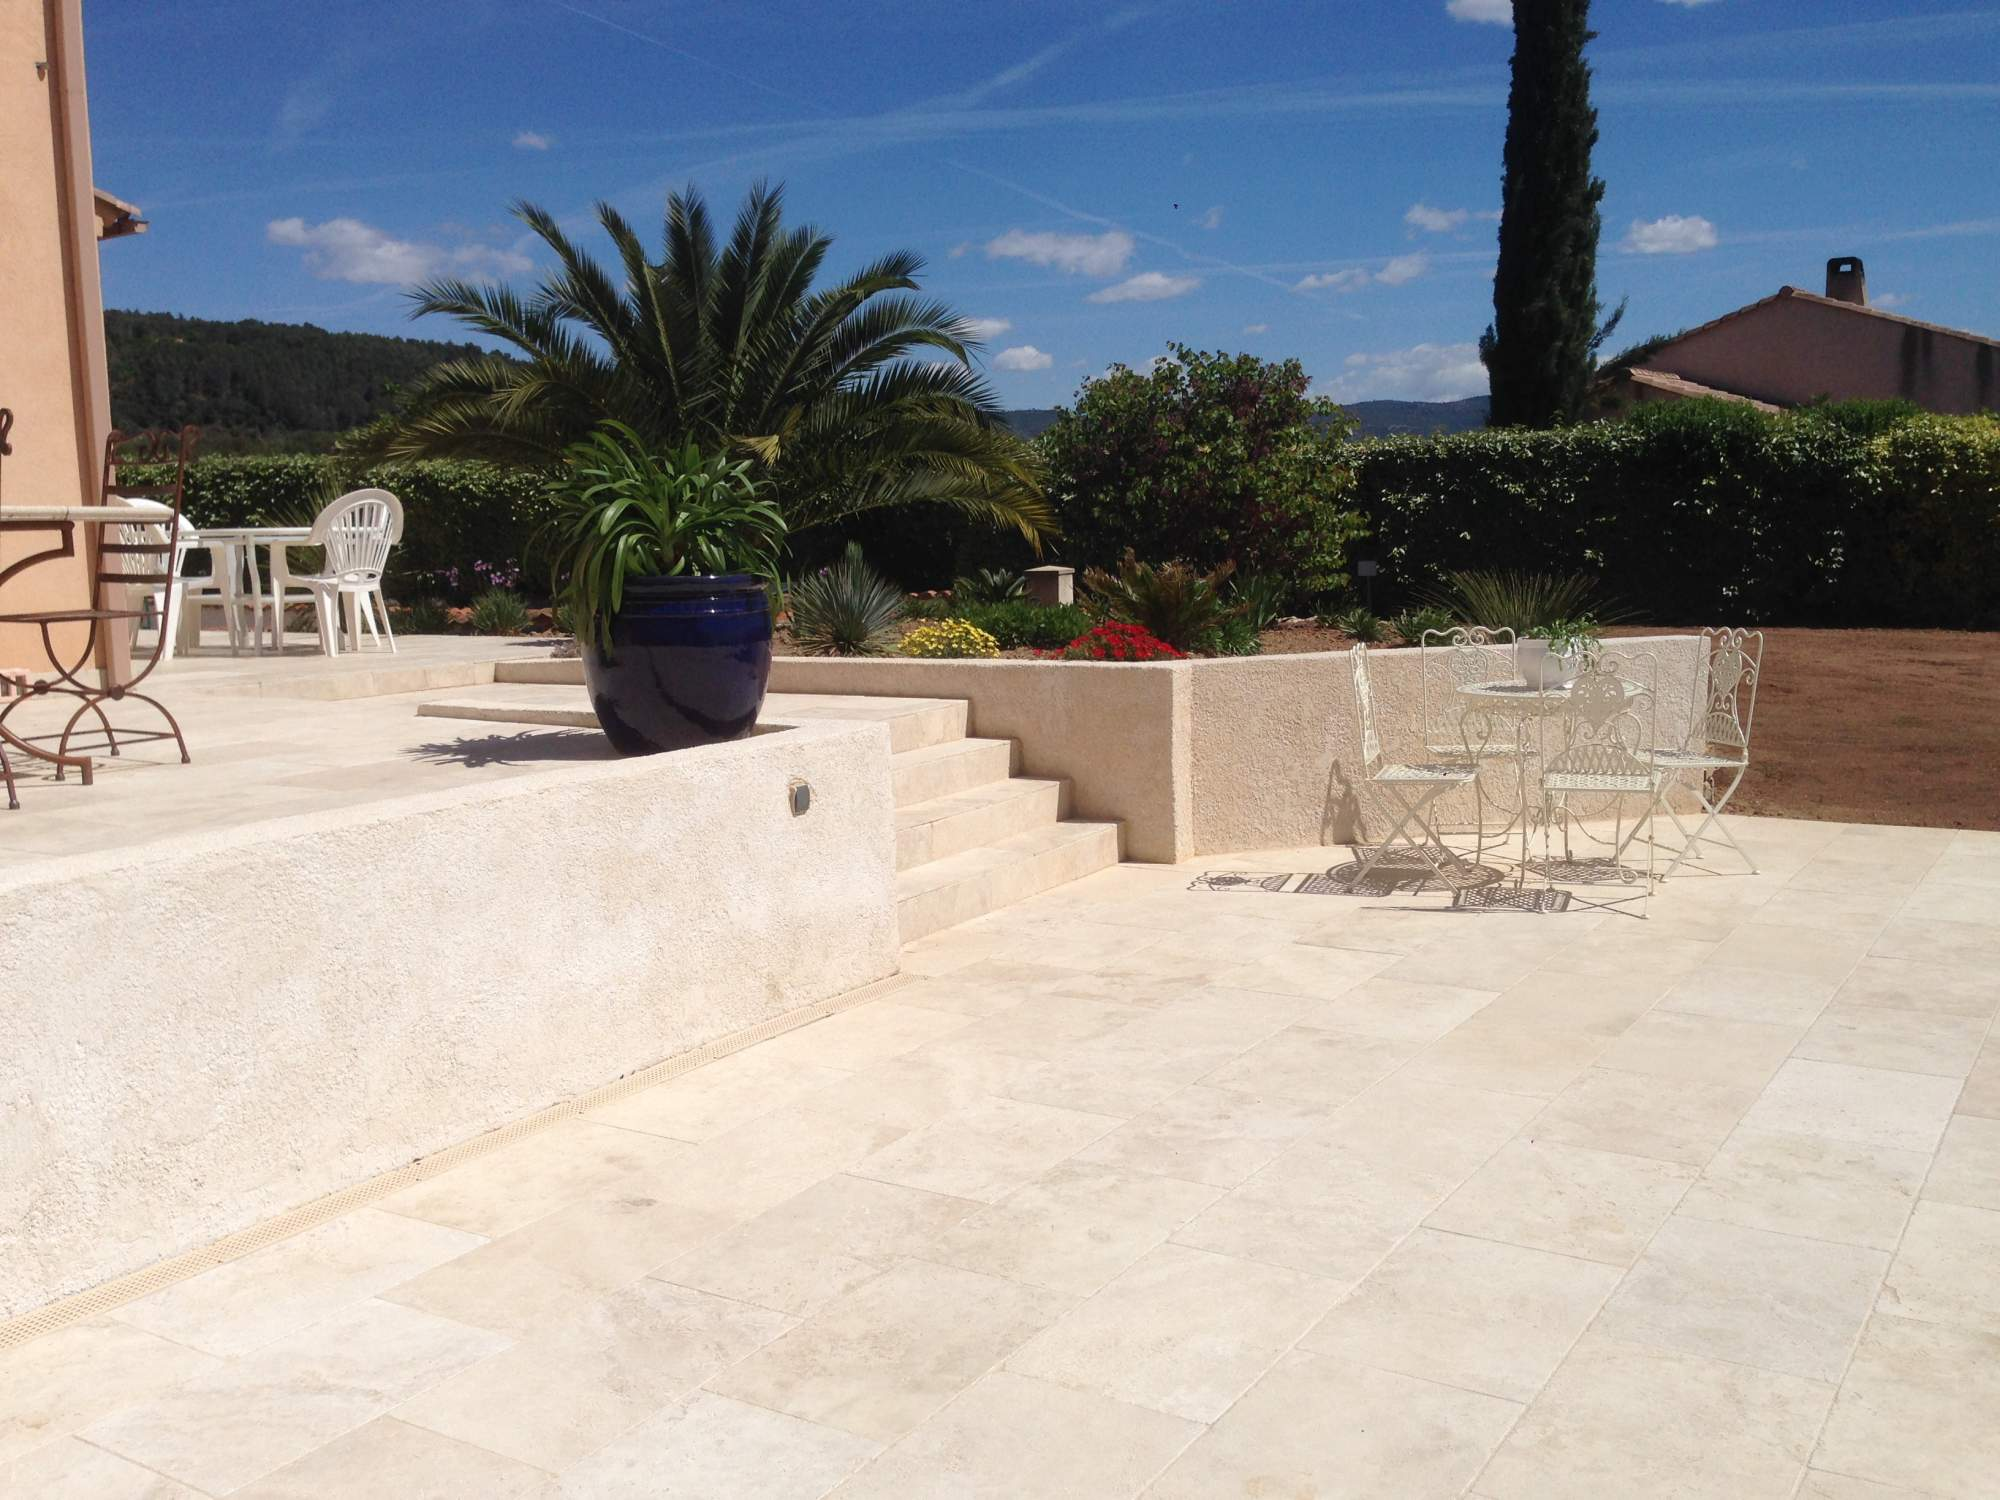 Contour de piscine terrasse en travertin 40 60 pose for Carrelage exterieur travertin